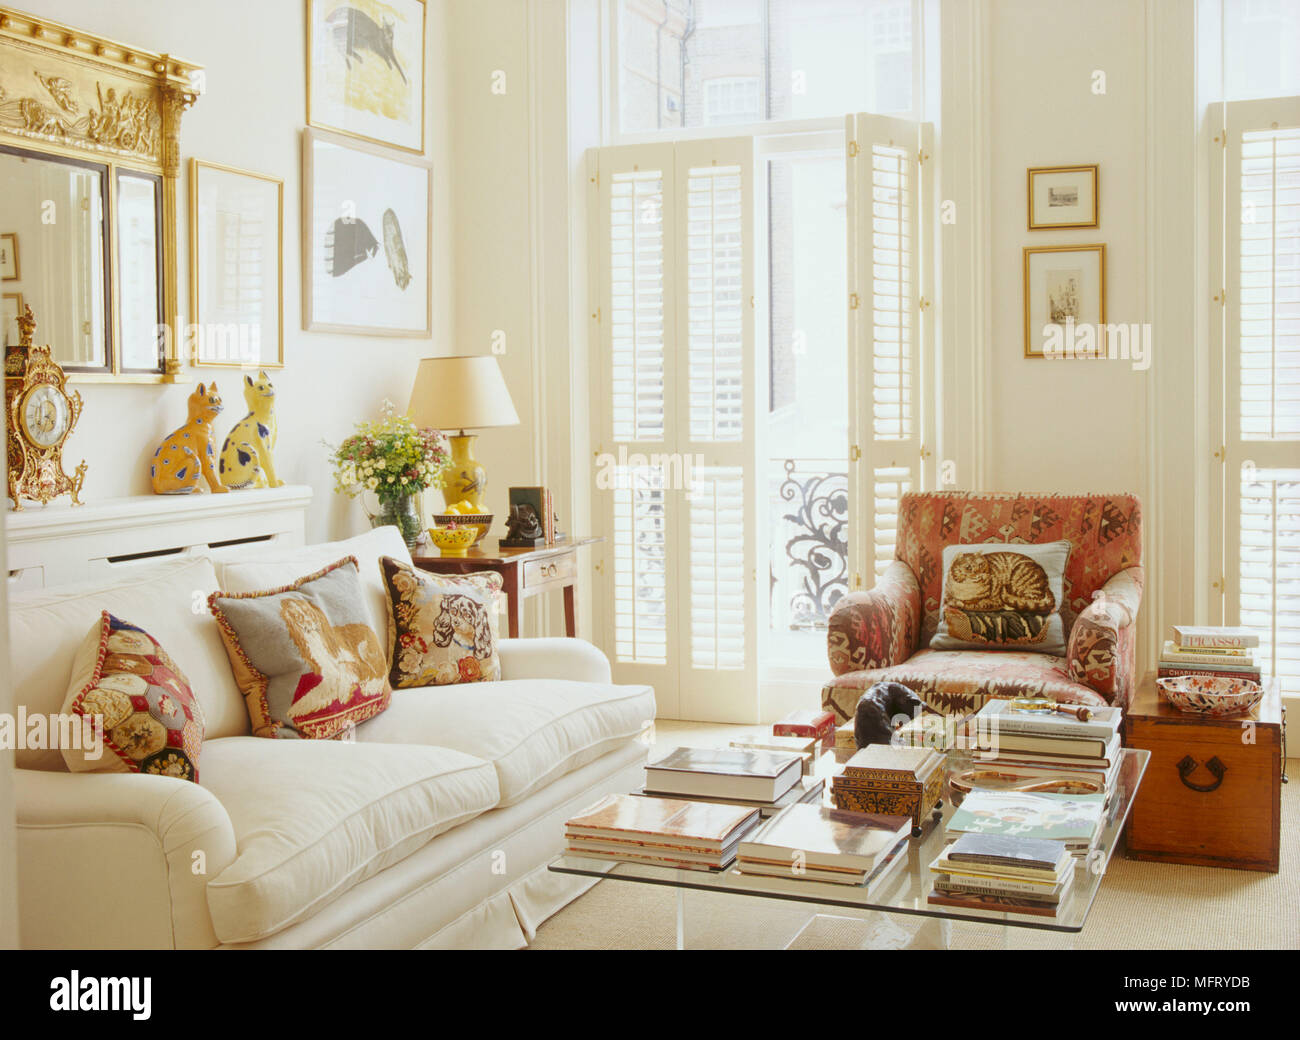 A traditional neutral sitting room with upholstered sofa and ...